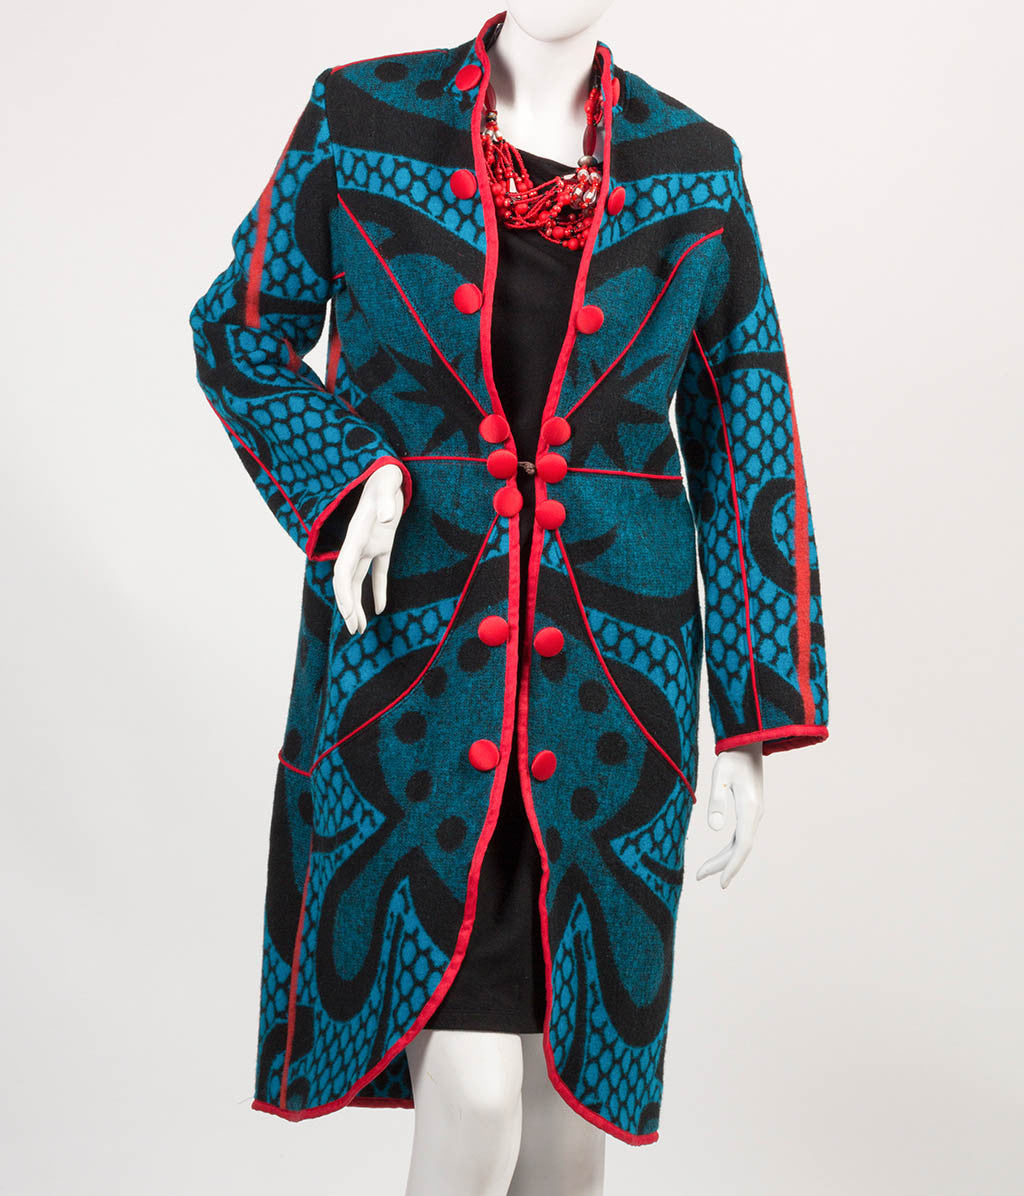 Kobo Ea Bohali Coat - Full Length (Blue) - Inspired Luxe